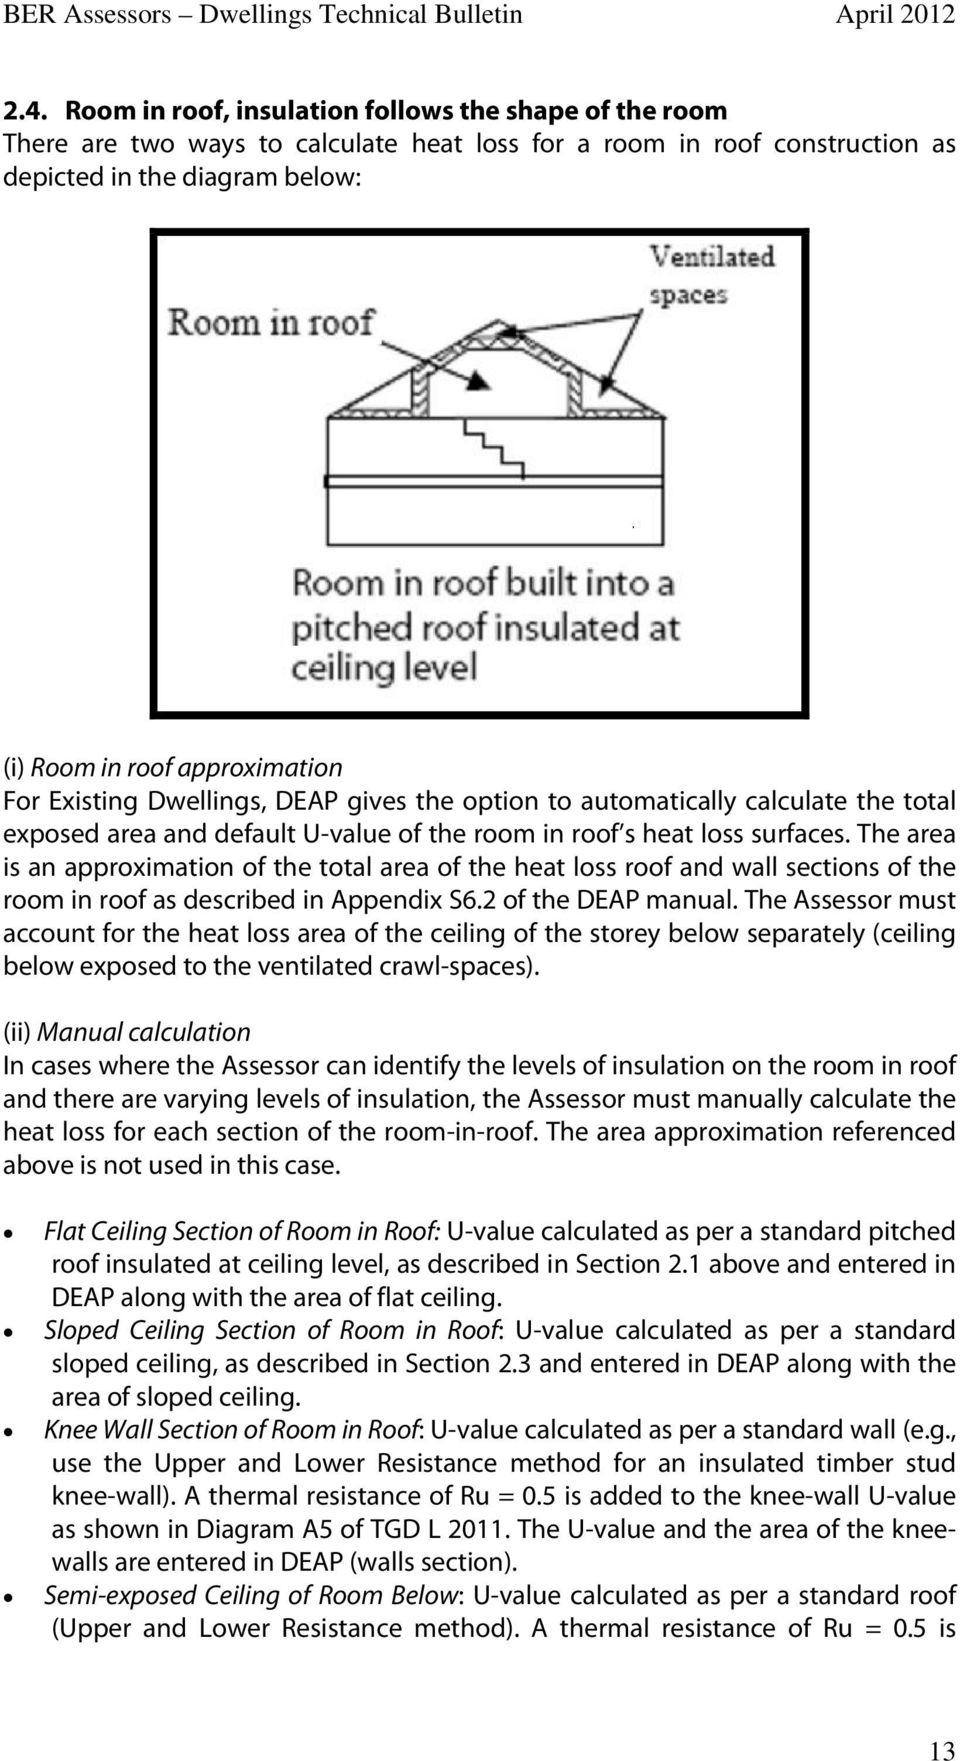 The area is an approximation of the total area of the heat loss roof and wall sections of the room in roof as described in Appendix S6.2 of the DEAP manual.